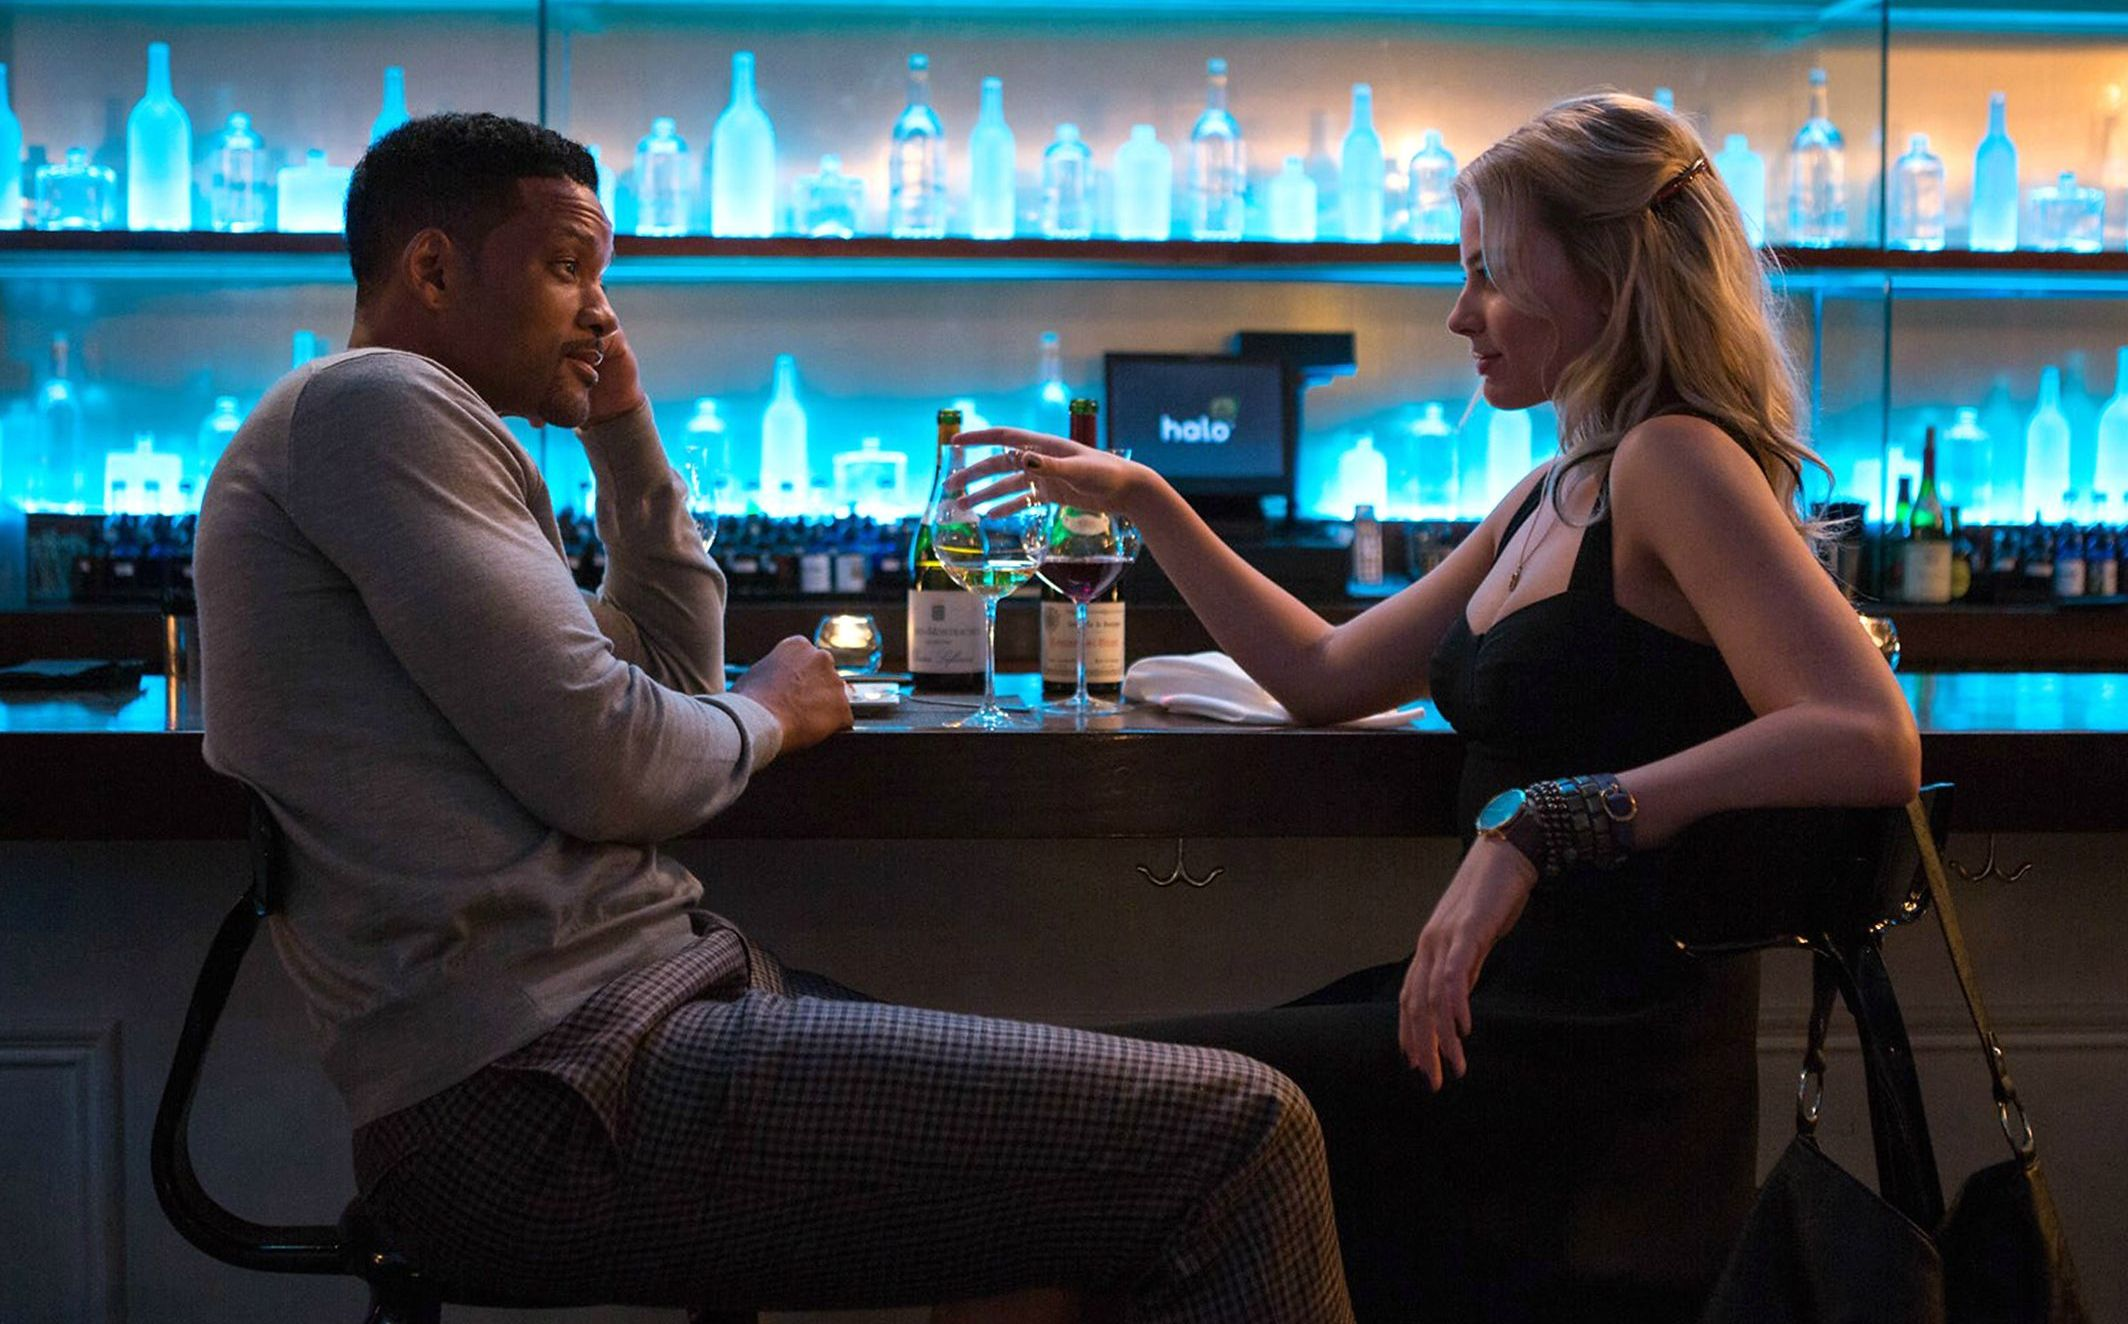 Will Smith as Nicky and Margot Robbie as Jess having a drink